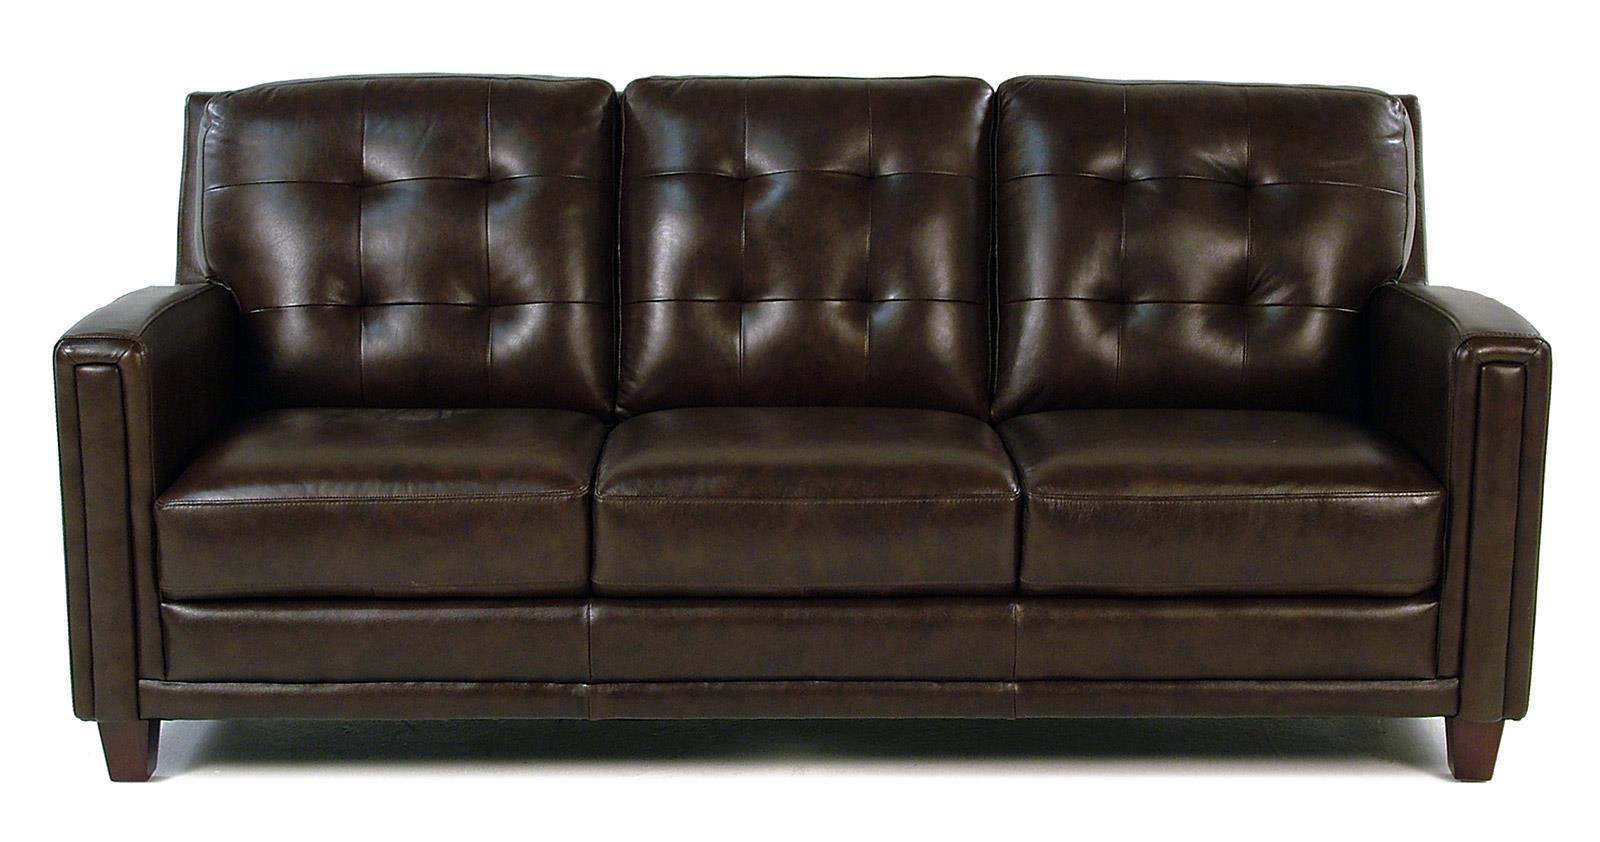 Loft Leather Winfield Leather Sofa - Item Number: 8583-30